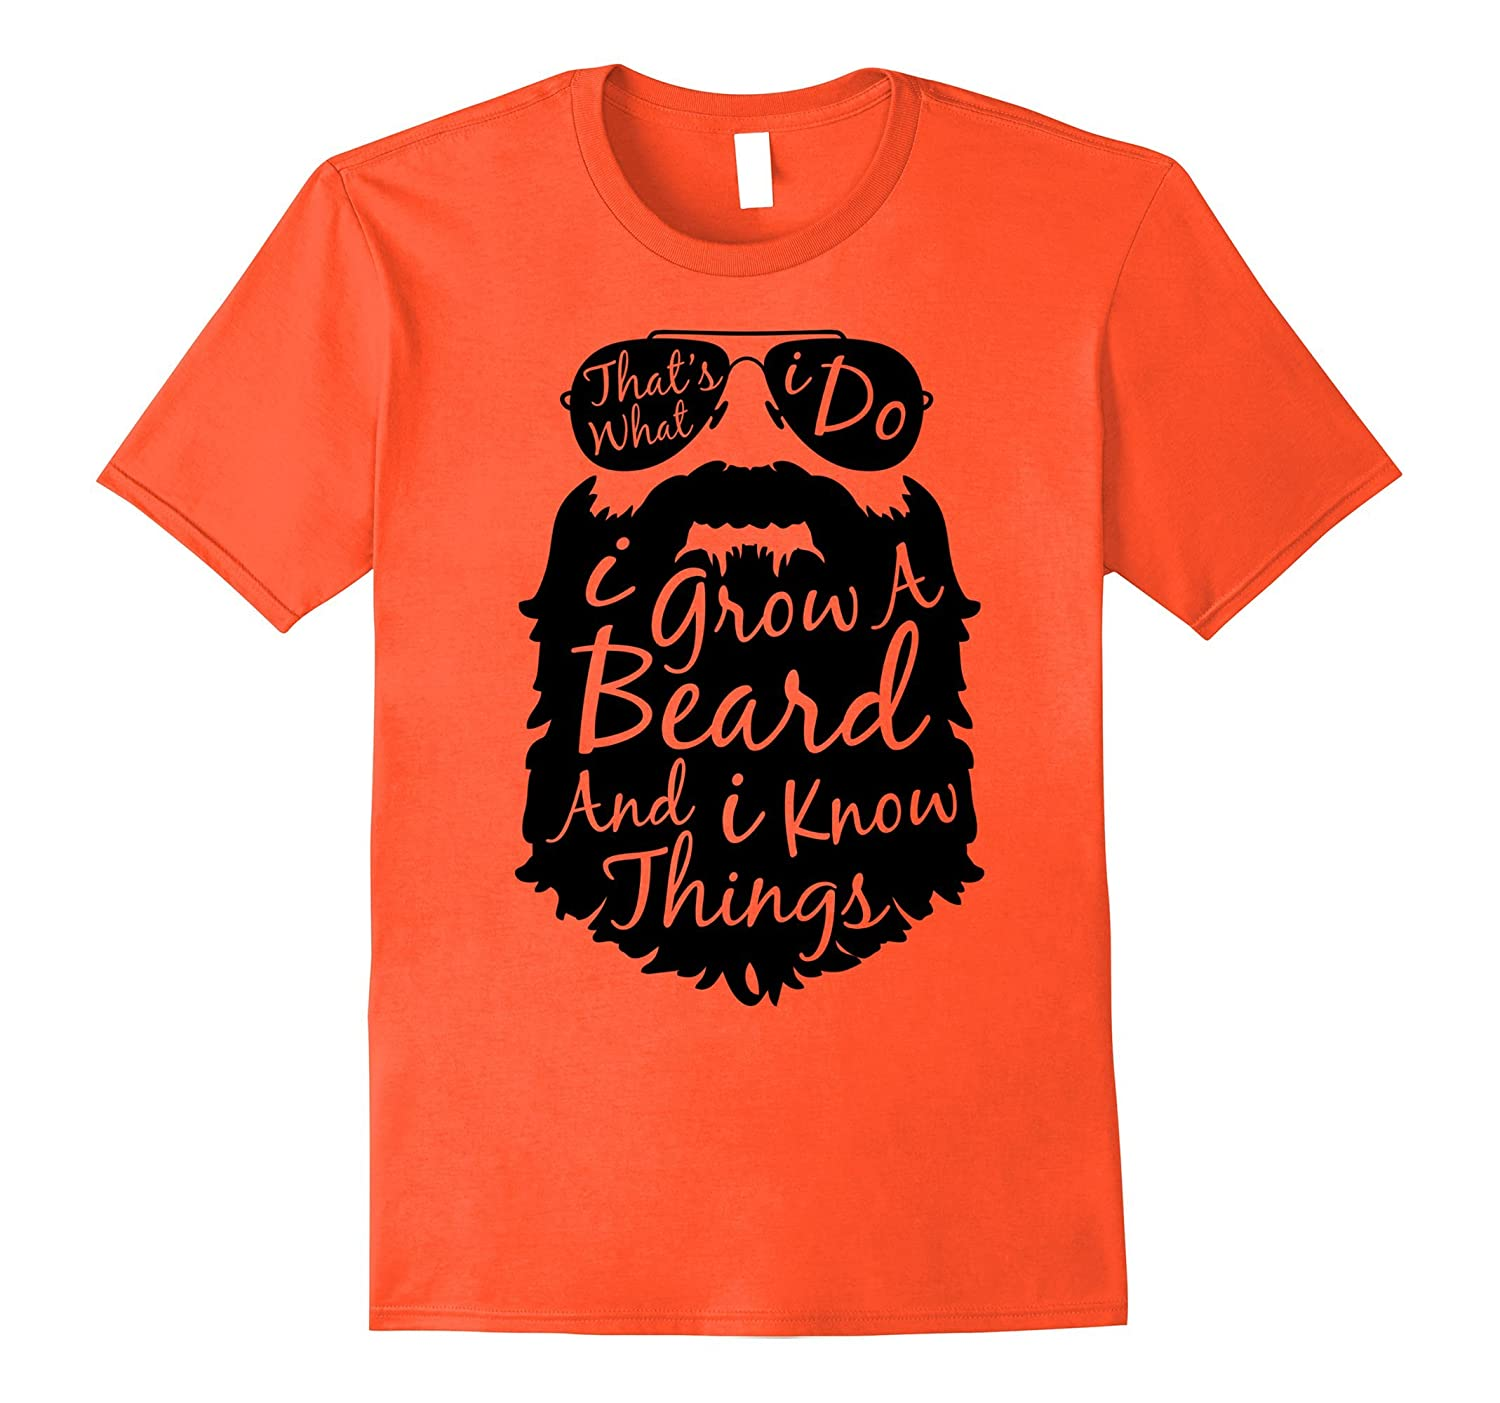 302b922570 Thats what I do I grow a beard and I know things t shirt-ANZ ⋆ Anztshirt